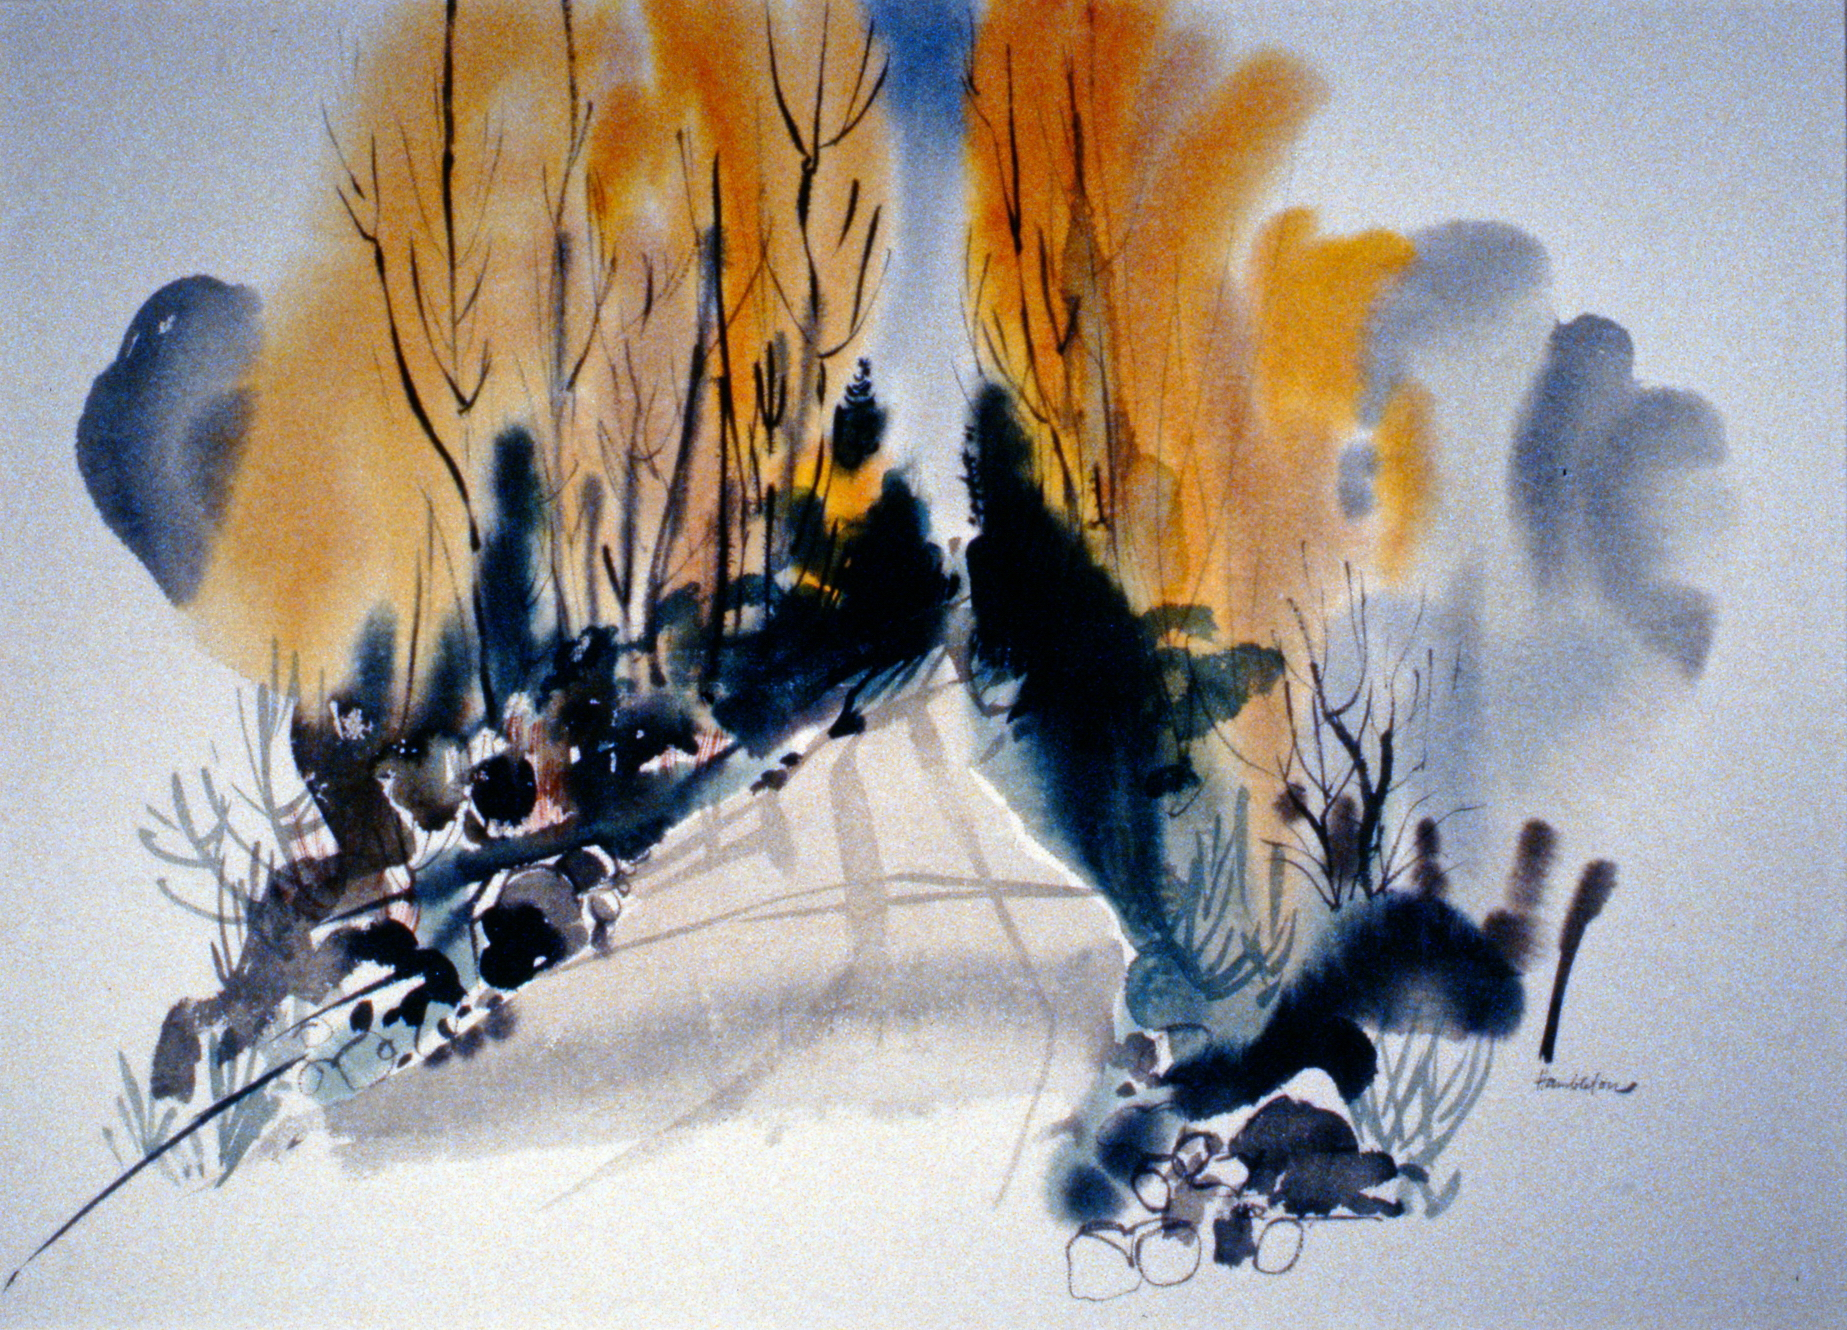 Cariboo Autumn,  n.d.Jack Hambleton, watercolour on paper, 54 x 74.3 cm, 1987.01.01. Gift of Mrs. Ernestine Lamoureux.